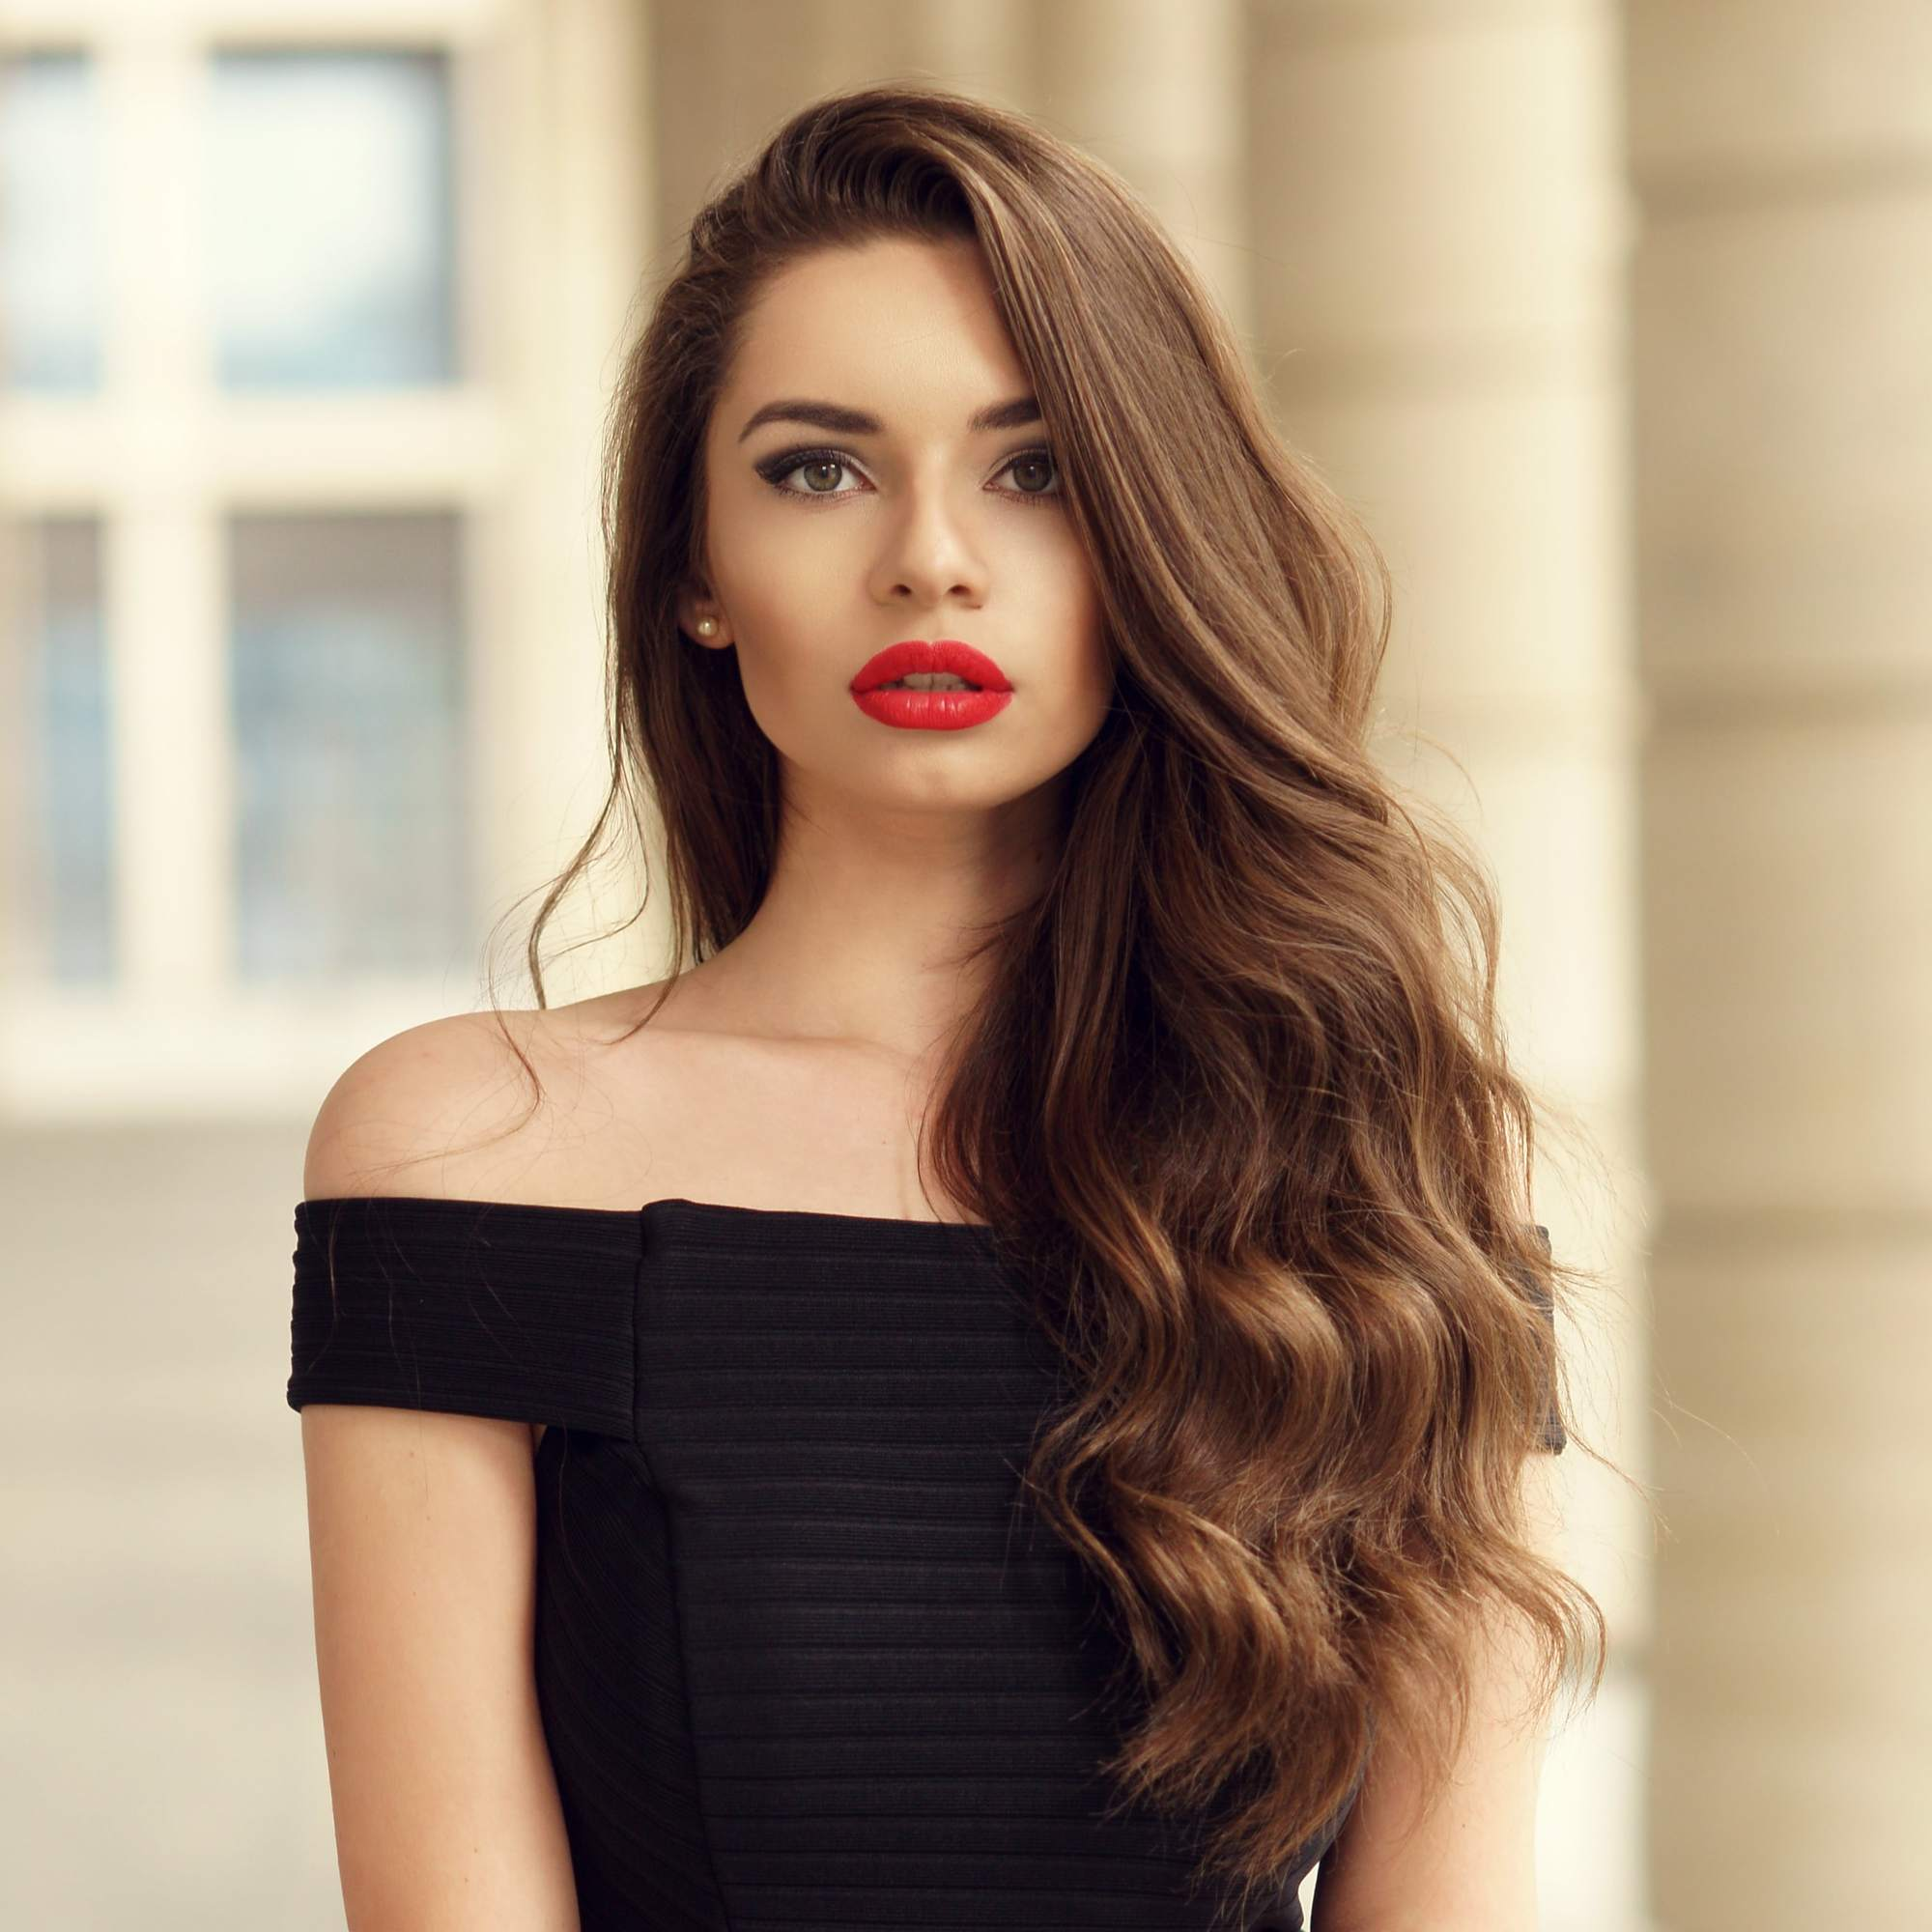 Hairstyles for Long Brown Hair 16 Unique Looks to Try